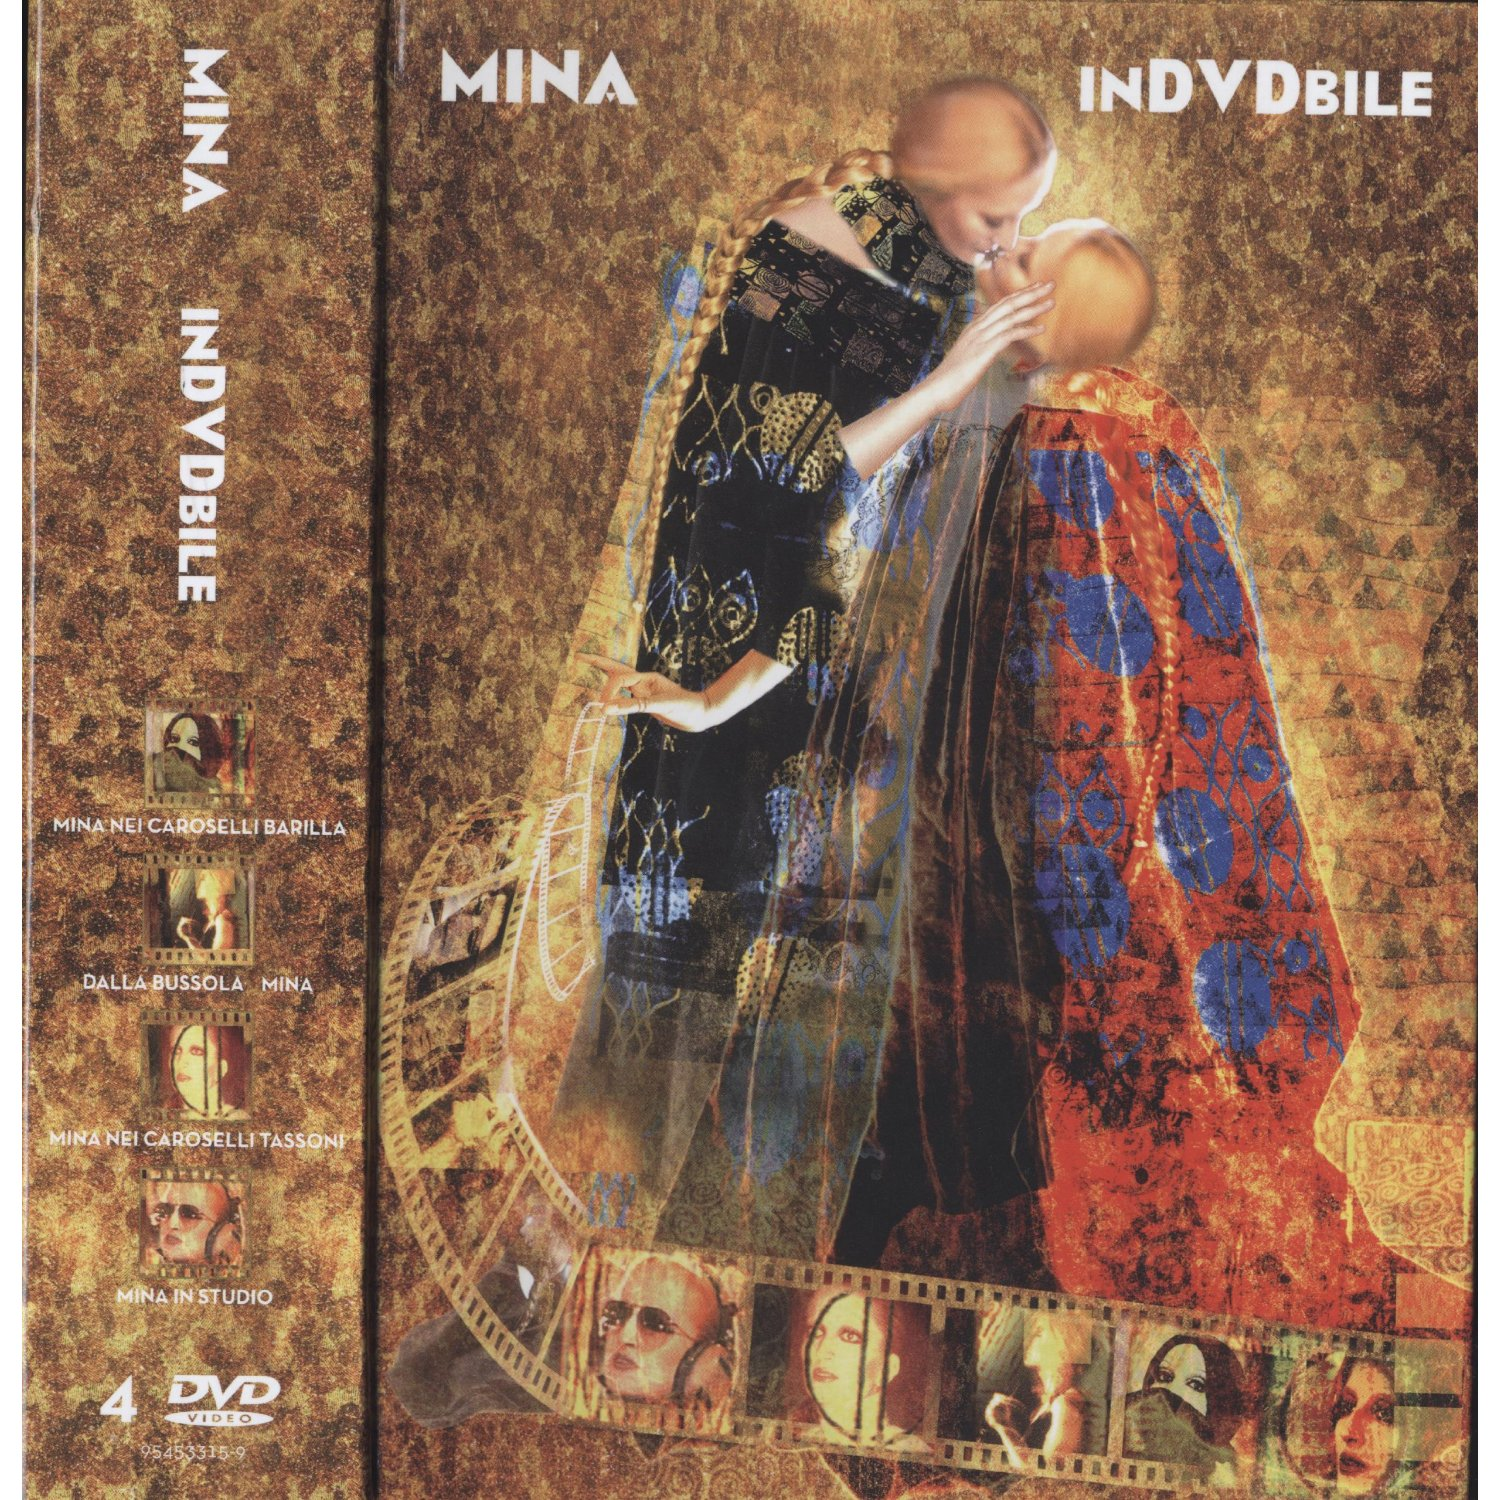 Mina InDVDbile dvd cover front